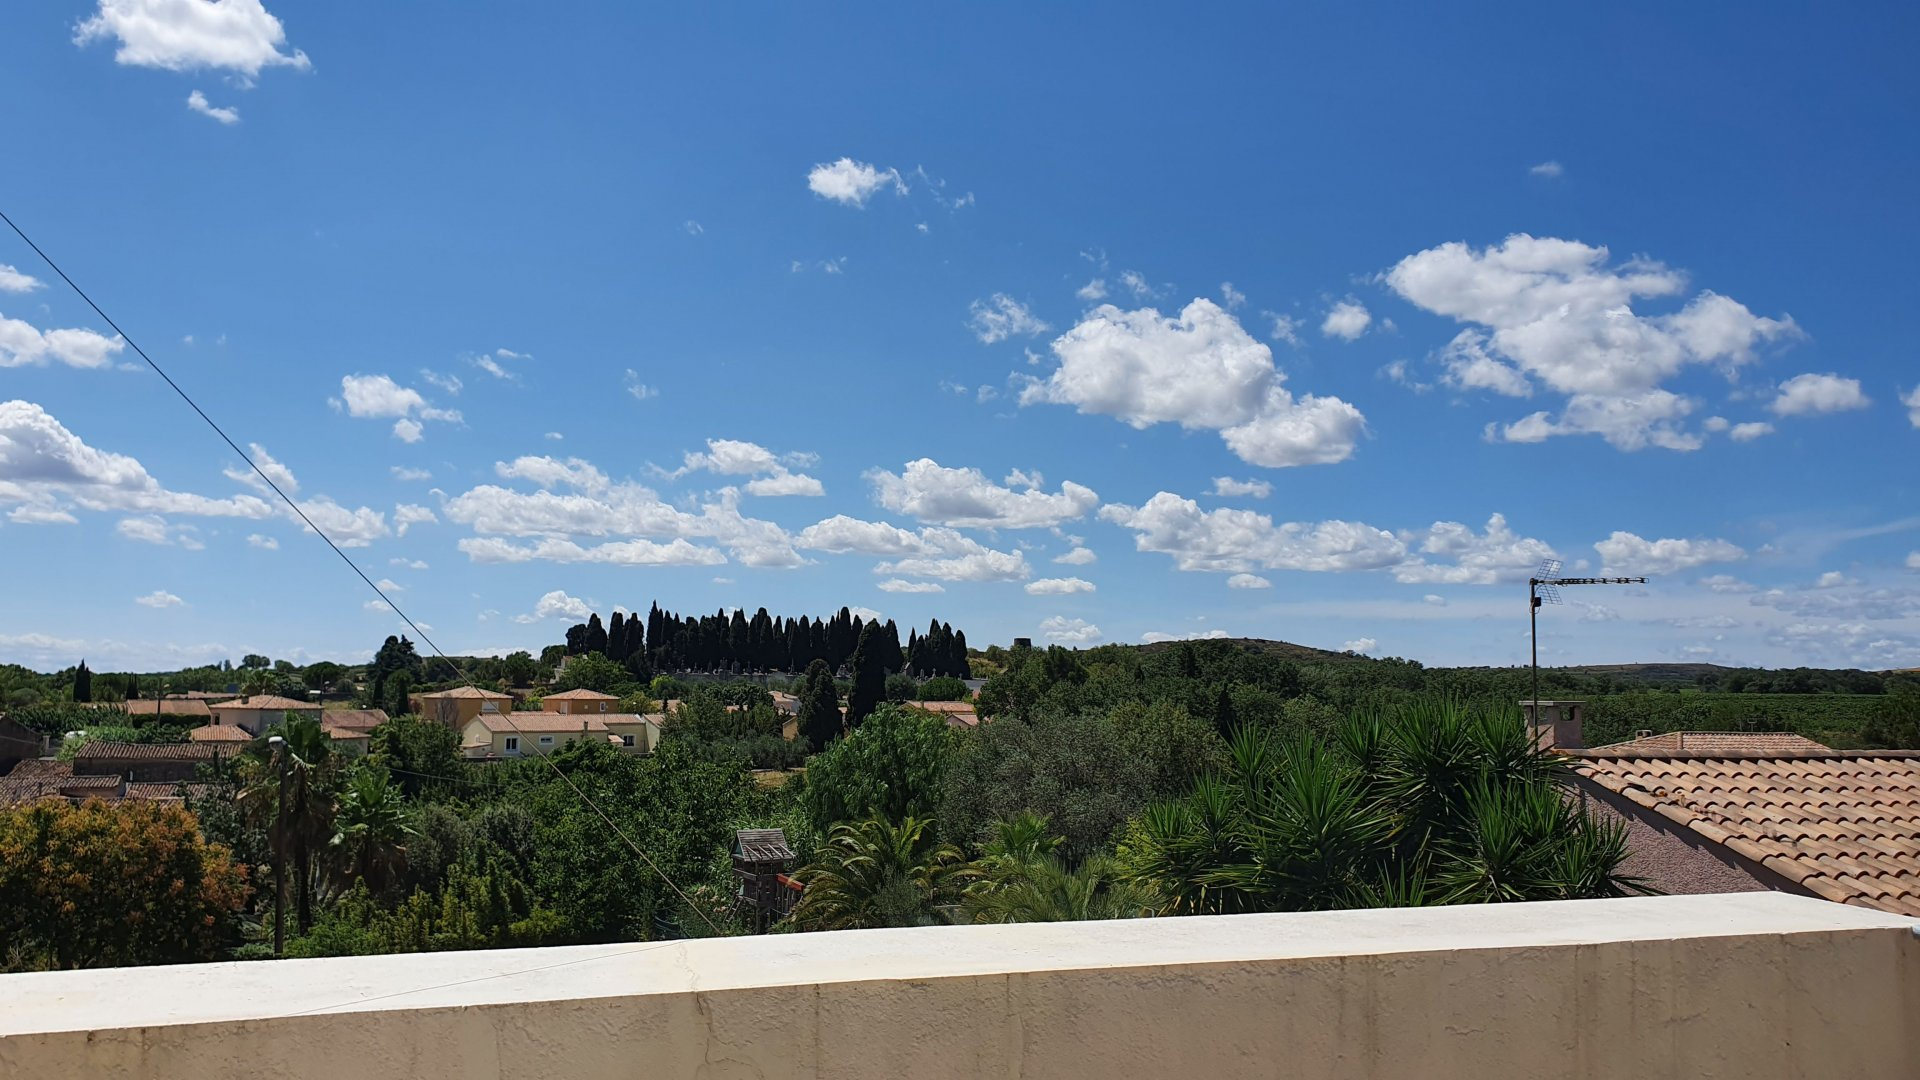 Rare! Private garden, 10m salt pool, 4 bedroom house with terraces and views, garage